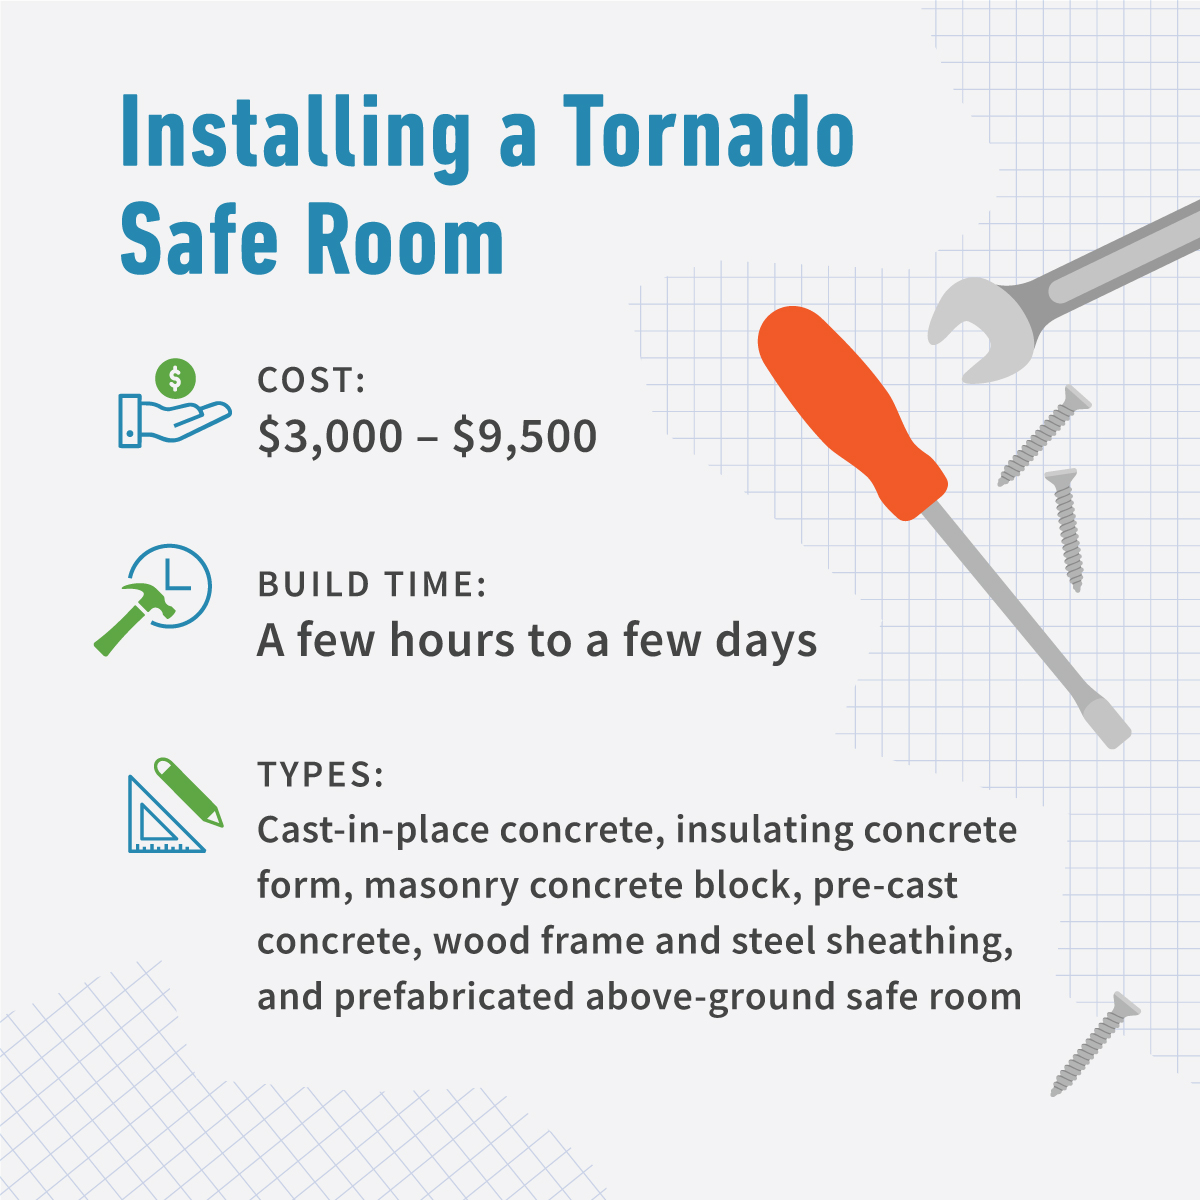 Meteorologists Safe Rooms